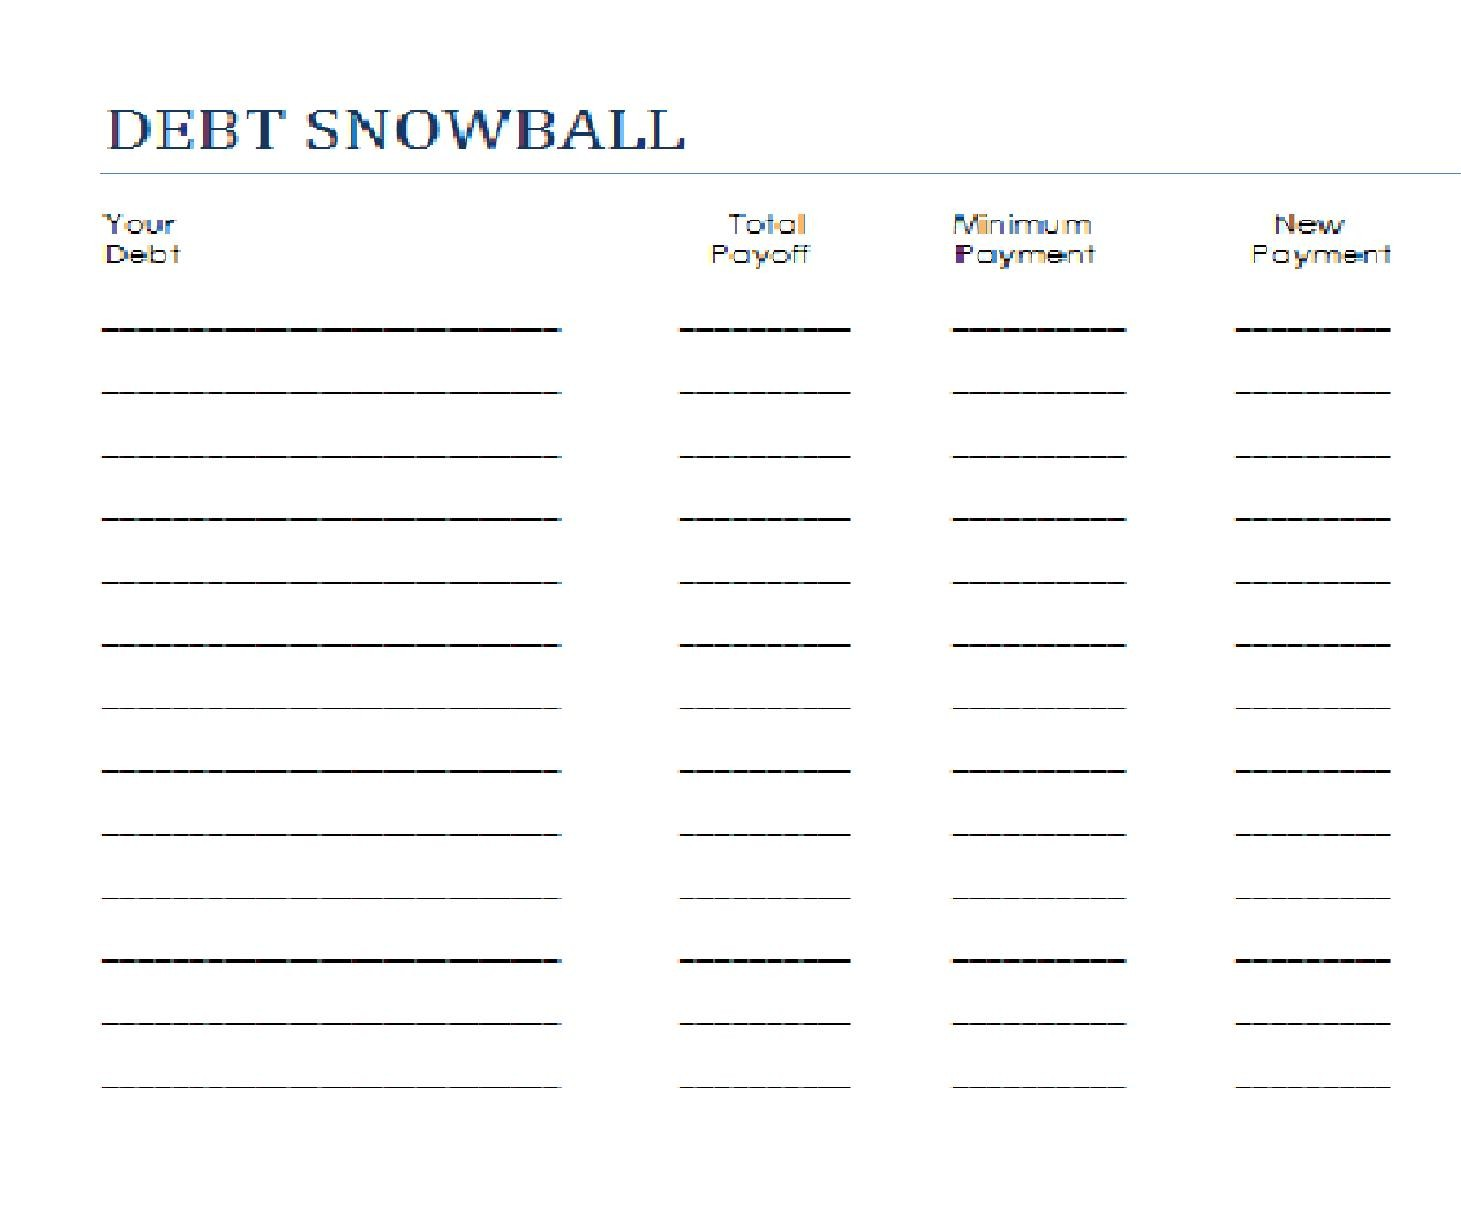 dave ramsey debt snowball form digital eventinfo